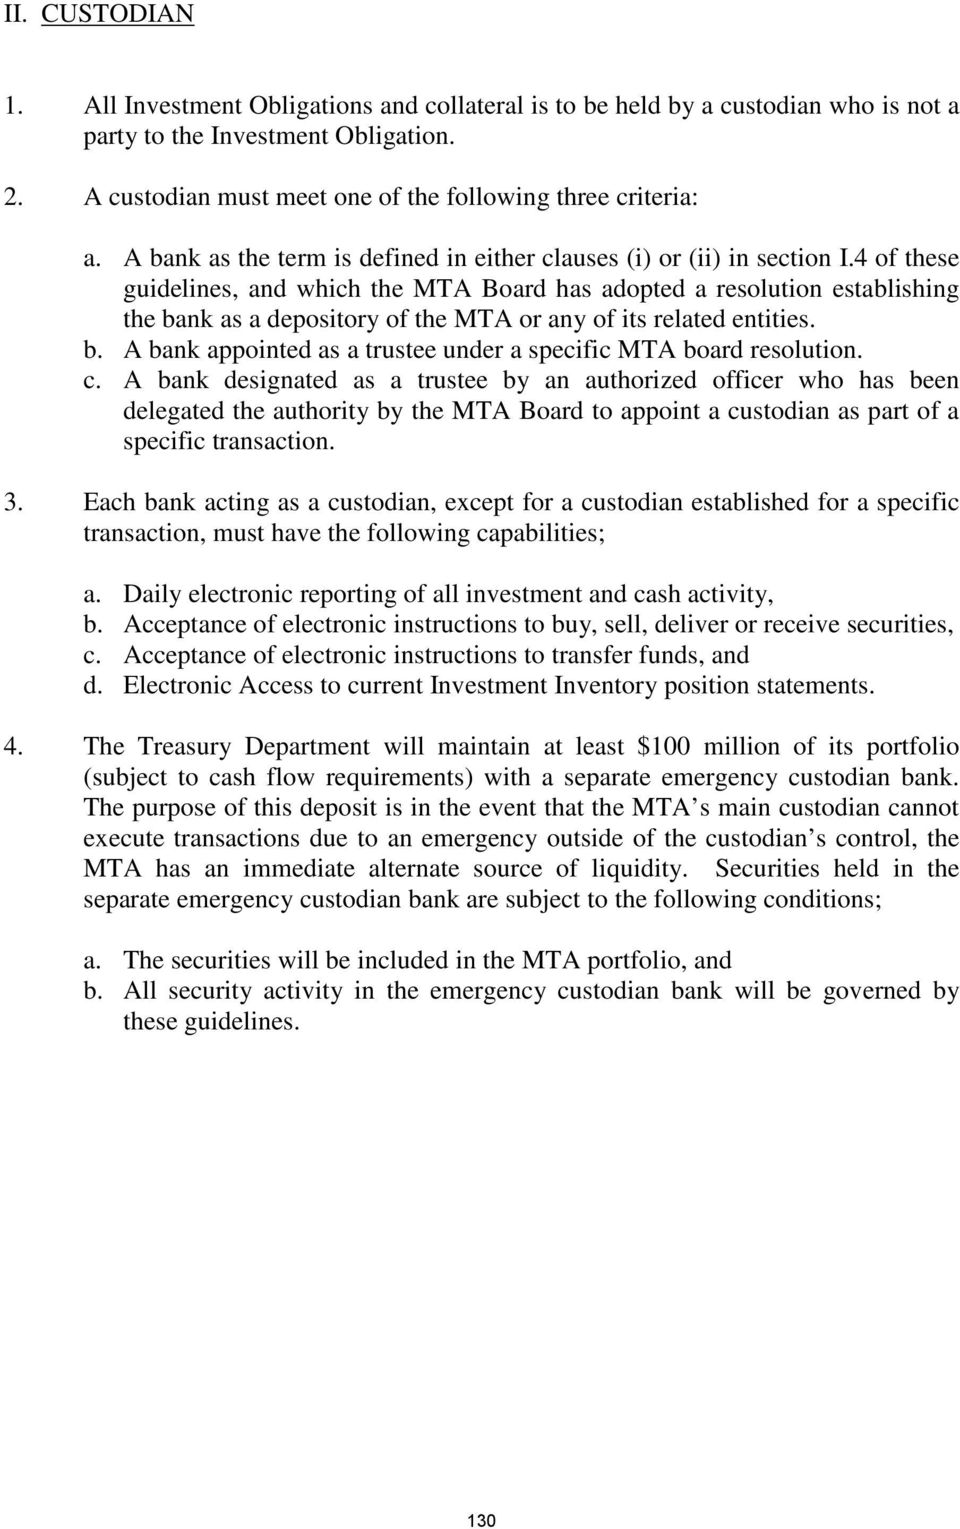 4 of these guidelines, and which the MTA Board has adopted a resolution establishing the bank as a depository of the MTA or any of its related entities. b. A bank appointed as a trustee under a specific MTA board resolution.